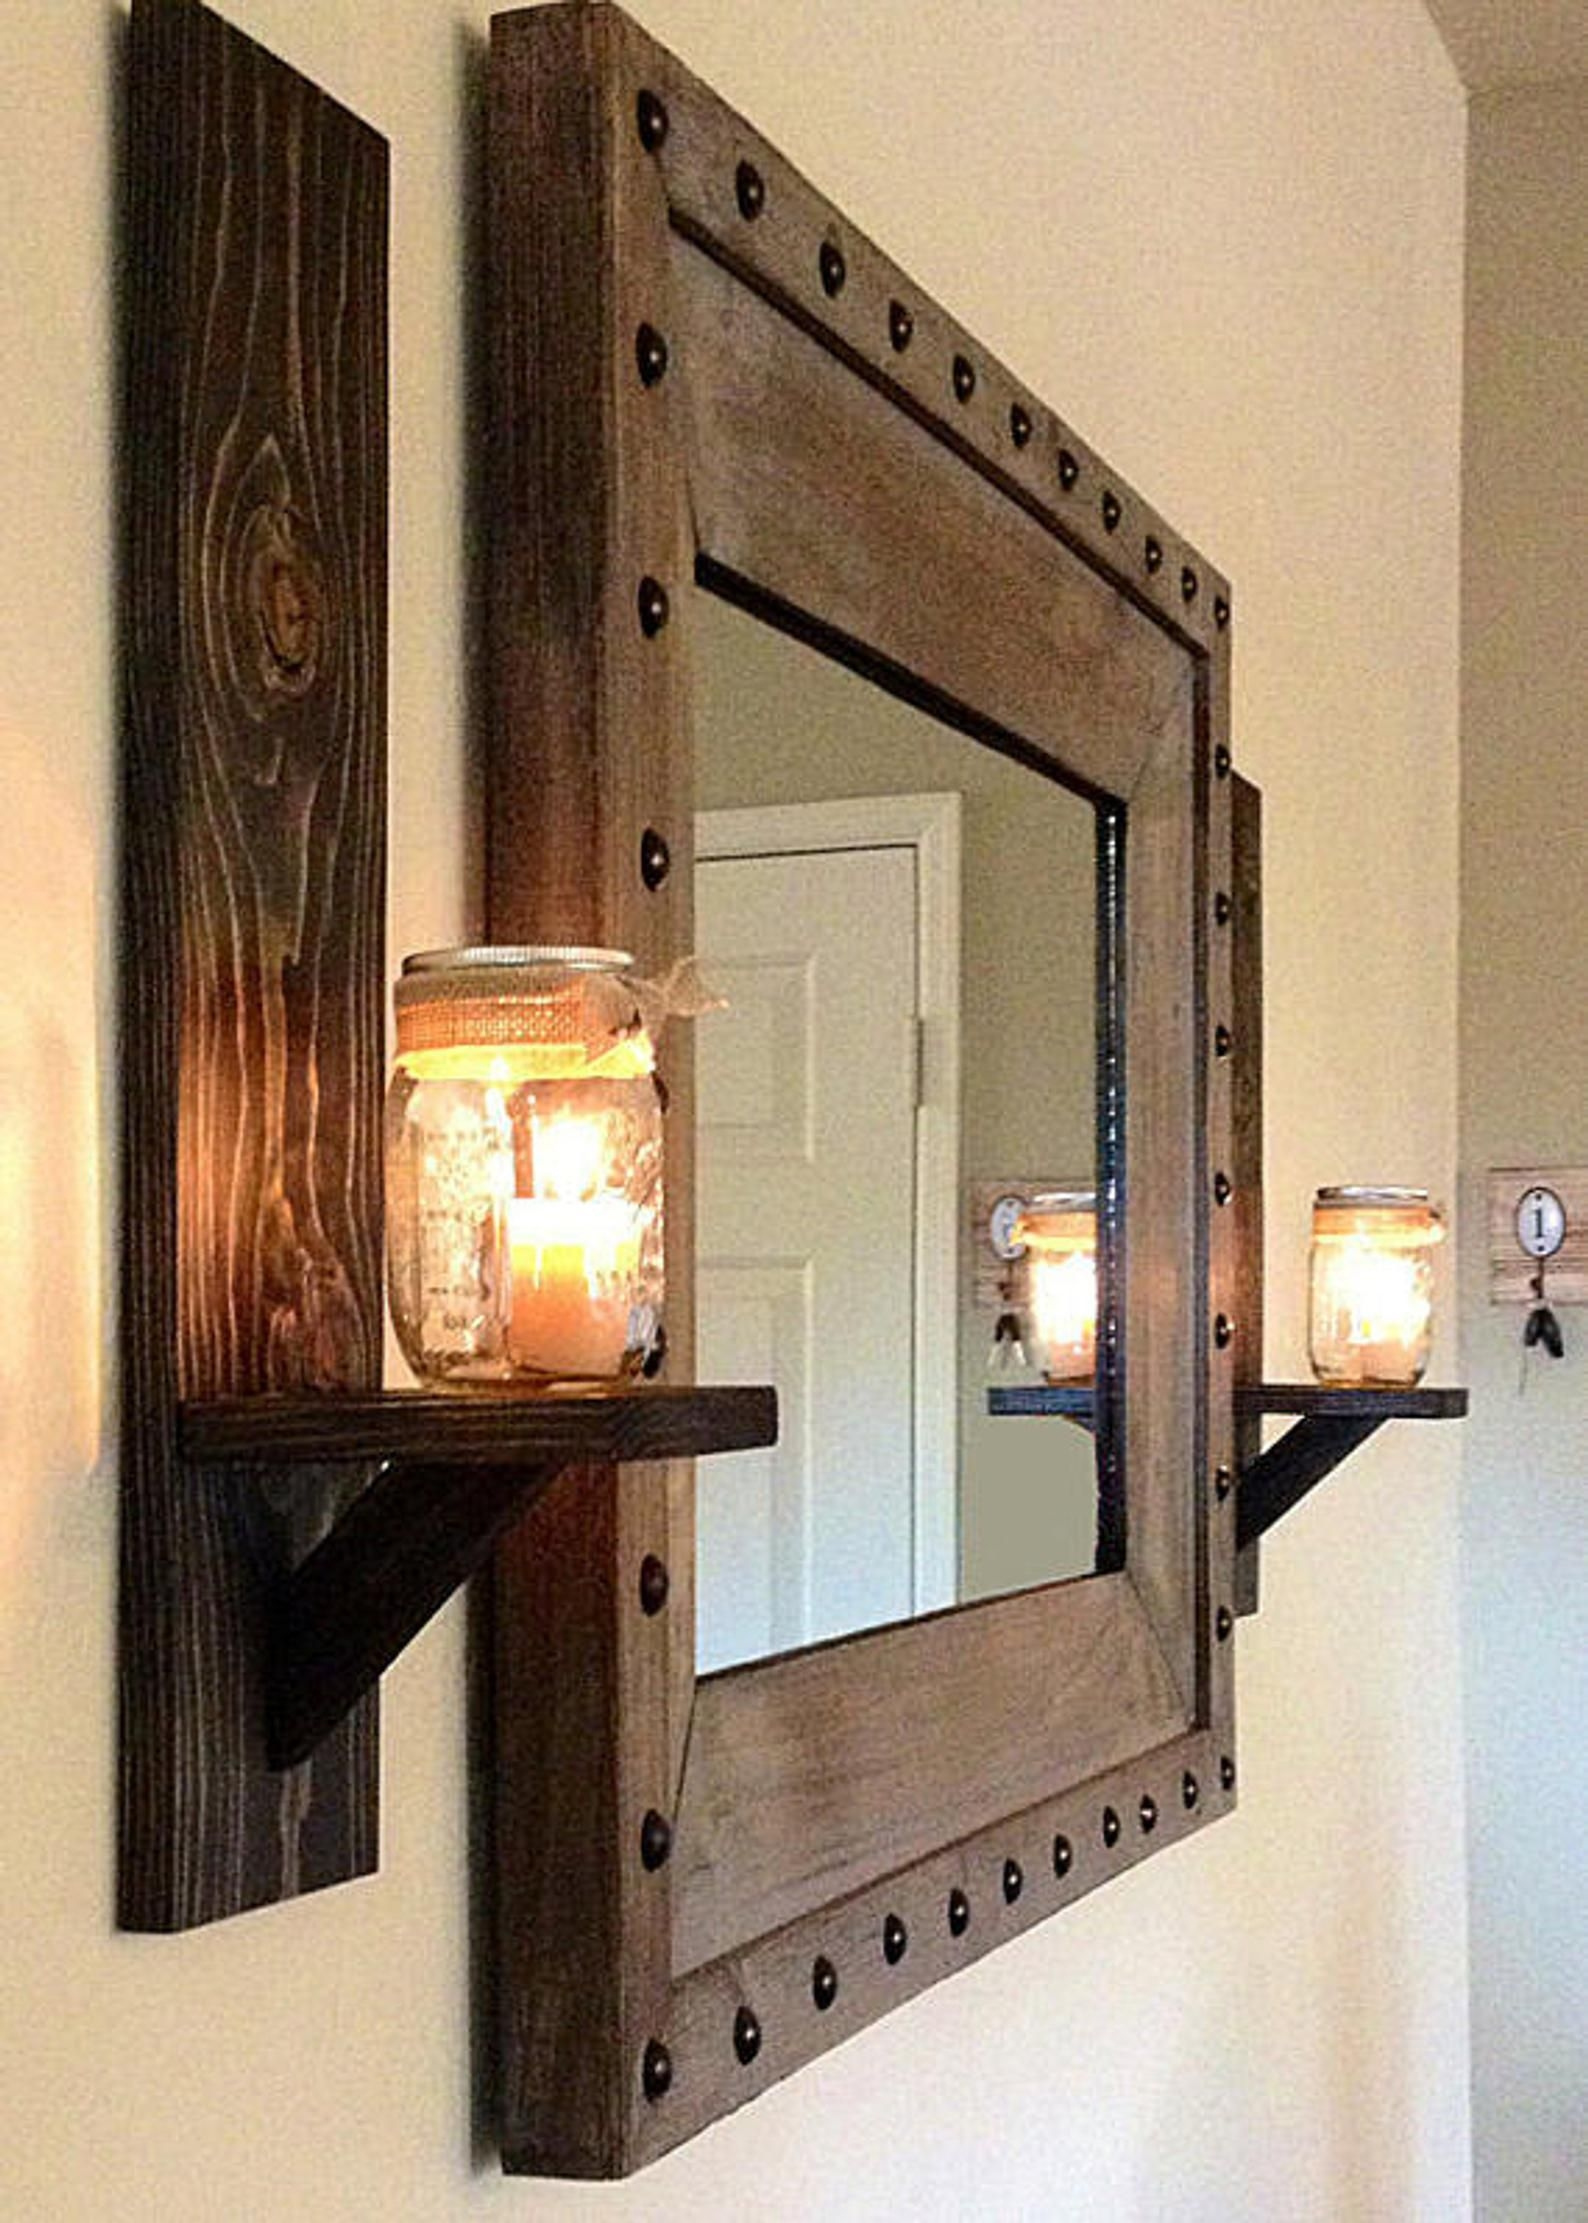 Decorative Metal Wall Sconce Pillar Candle Holders Elegant and Modern